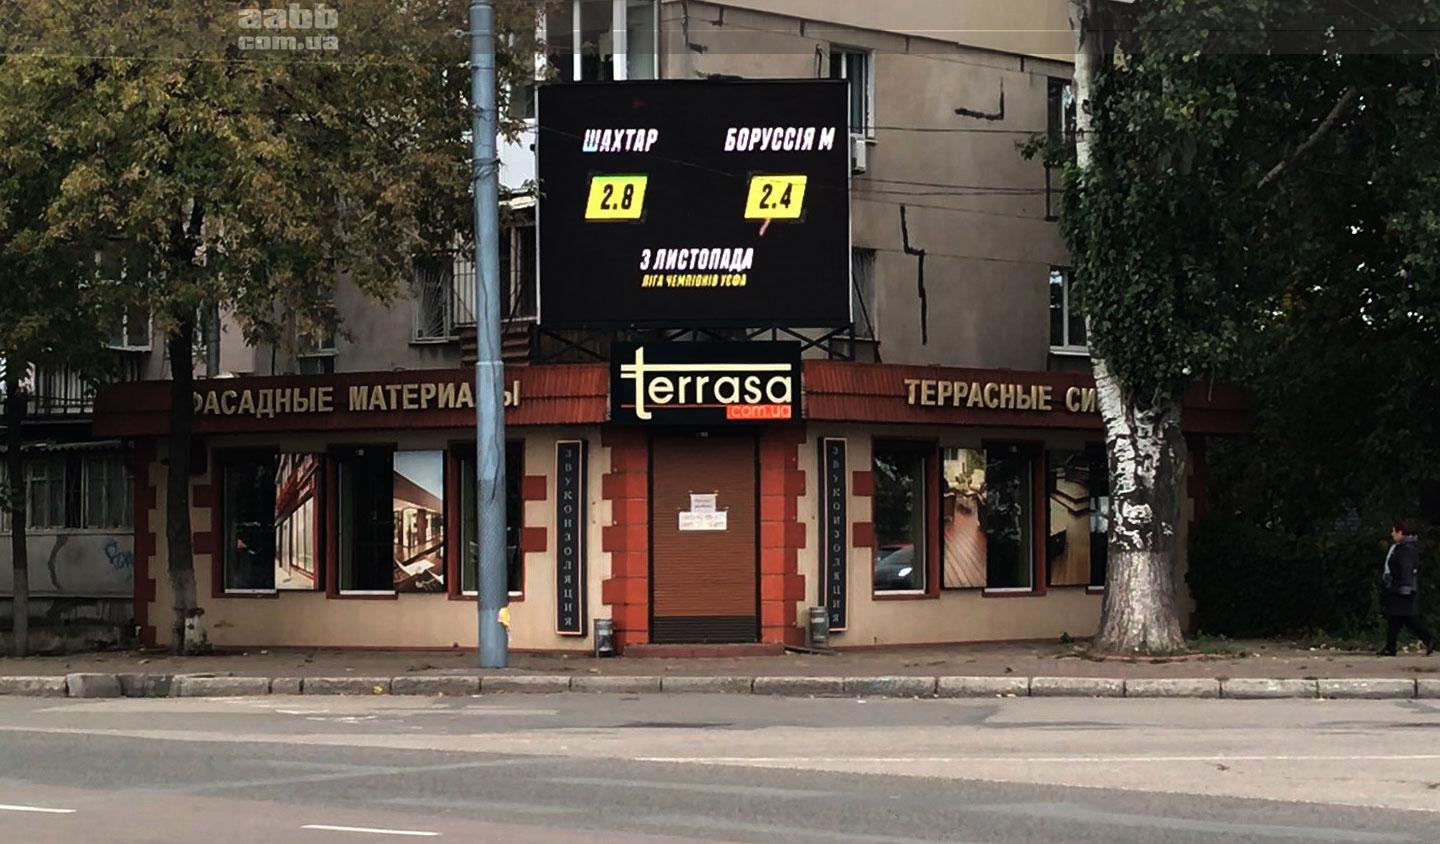 Advertising on video screens in Odessa (November 2020)